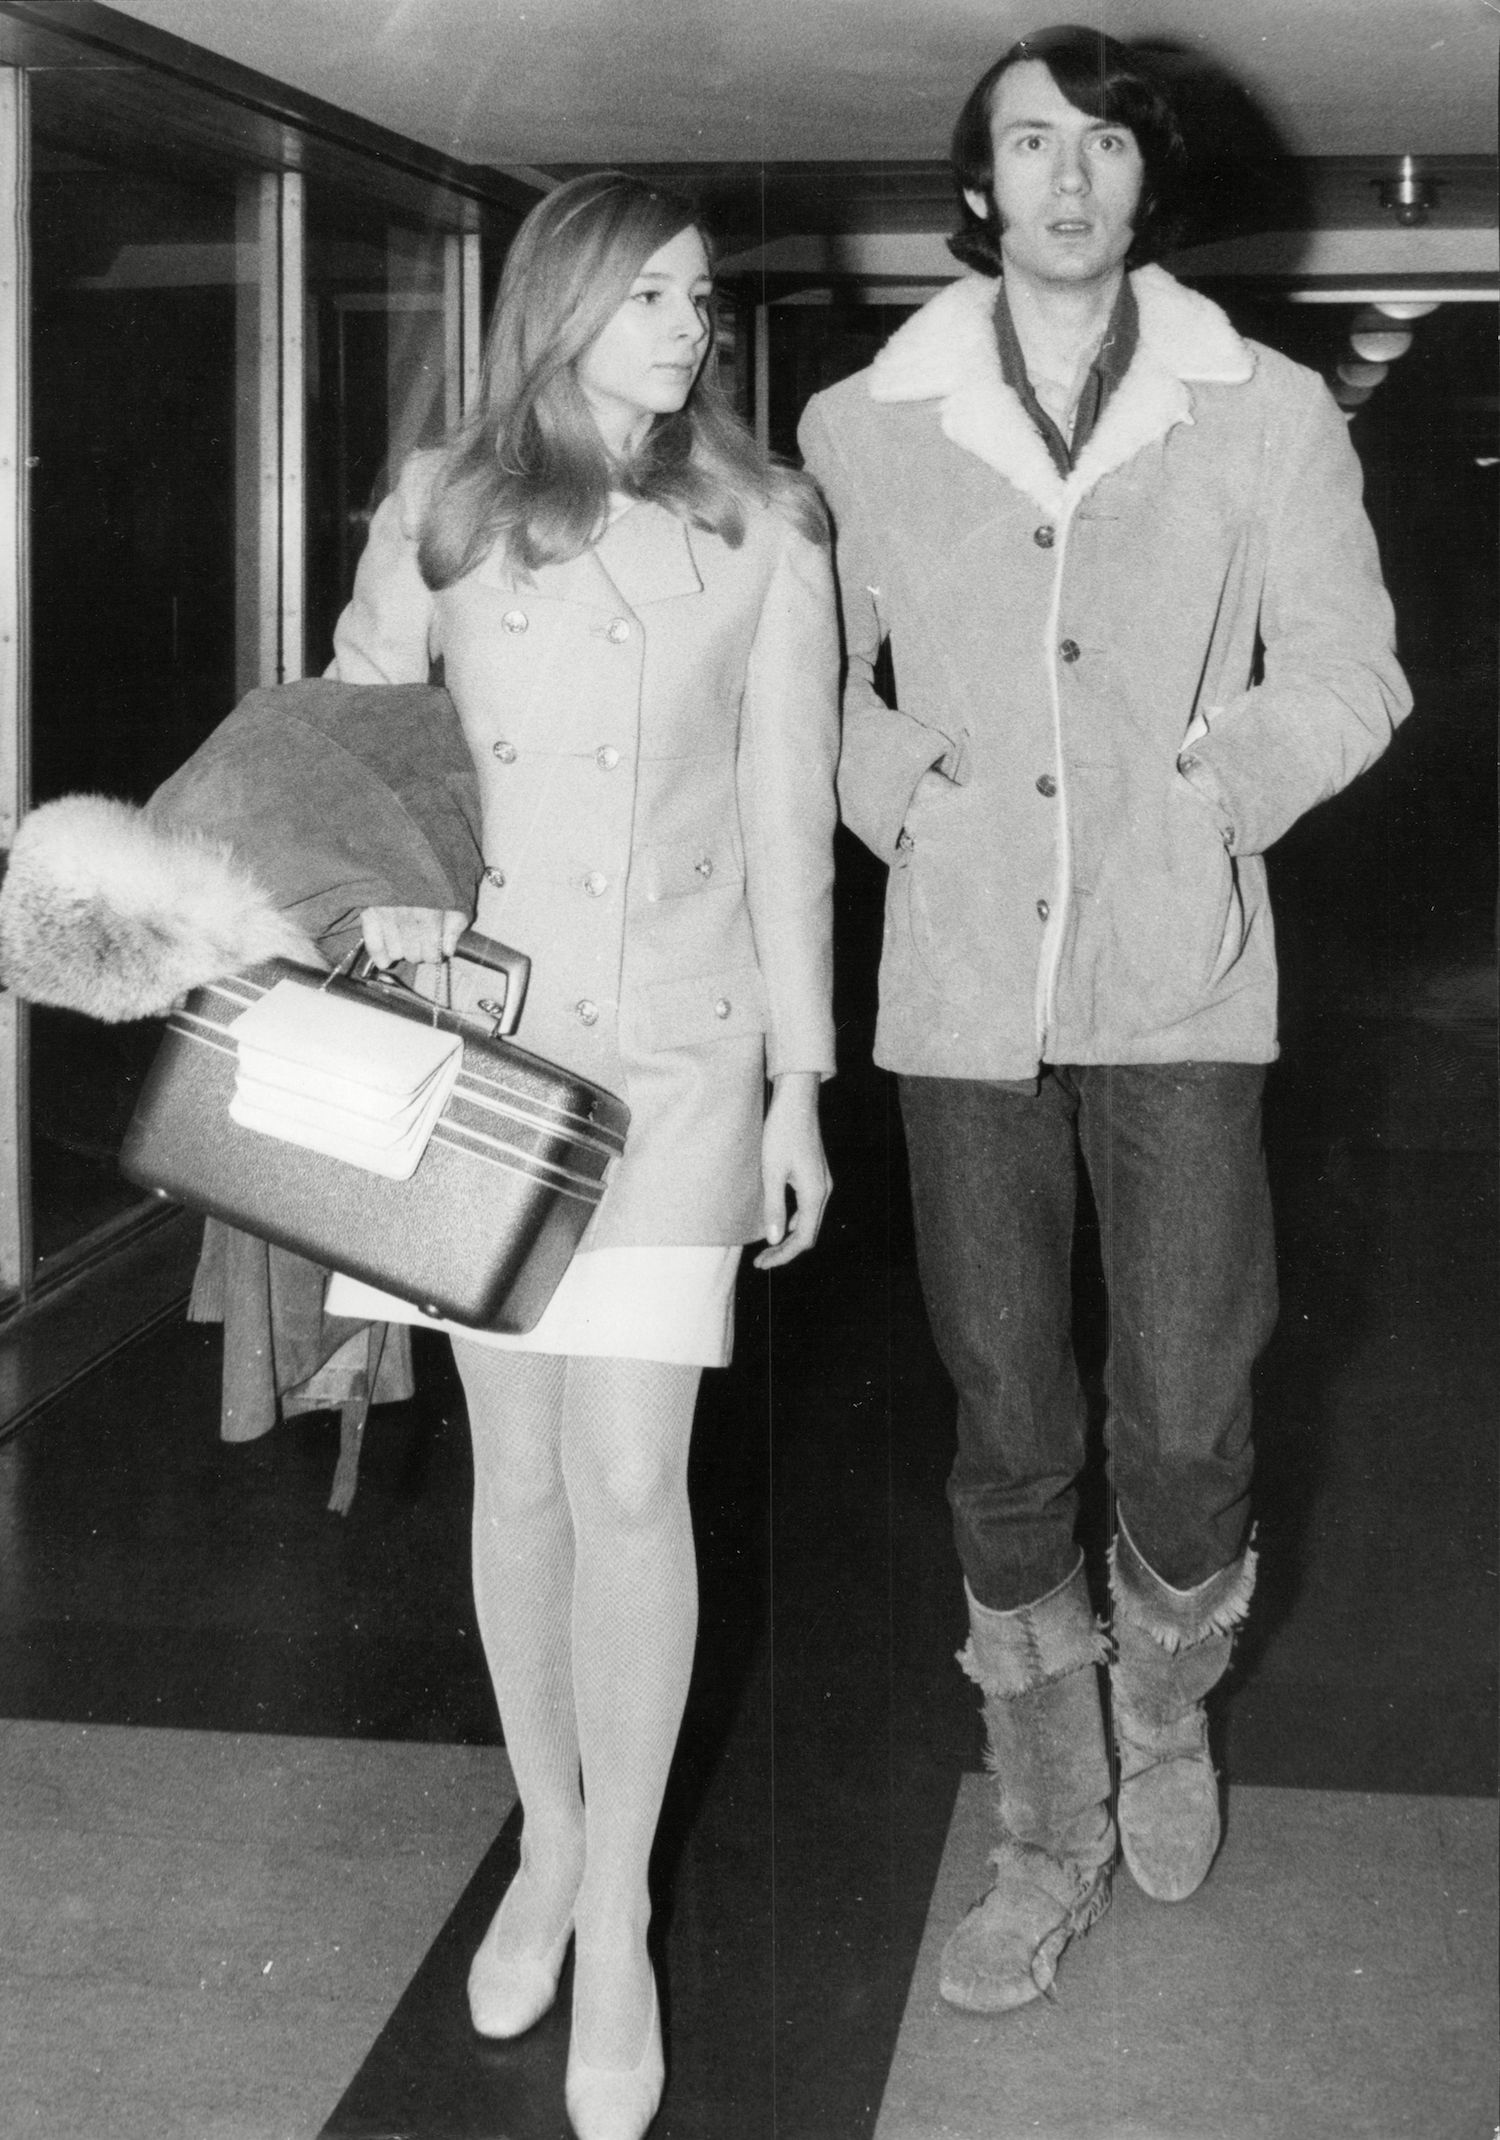 Pop Group The Monkees Michael Nesmith With Wife Phyllis Nesmith At Heathrow Airport The Monkees Were An American Rock Band That Released Music Under Its Original Incarnation Between 1966 And 1970 With Subsequent Reunion Albums And Tours In The Decades That Followed. Assembled In Los Angeles In 1965 By Robert 'bob' Rafelson And Bert Schneider For The American Television Series The Monkees Which Lasted 2 Seasons From 1966a1968 The Musical Acting Quartet Was Composed Of Americans Micky Dolenz Michael Nesmith And Peter Tork And Englishman Davy Jones. The Band's Music Was Initially Supervised By Producer Don Kirshner. Described By Band Member Micky Dolenz As Initially Being 'a Tv Show About An Imaginary Band [.] That Wanted To Be The Beatles [but] That Was Never Successful' The Actor-musicians Soon Became A Real Band. As Dolenz Would Later Describe It 'the Monkees Really Becoming A Band Was Like The Equivalent Of Leonard Nimoy Really Becoming A Vulcan. Pop Group The Monkees Michael Nesmith With Wife Phyllis Nesmith At Heathrow Airport The Monkees Were An American Rock Band That Released Music Under Its Original Incarnation Between 1966 And 1970 With Subsequent Reunion Albums And Tours In The Decade